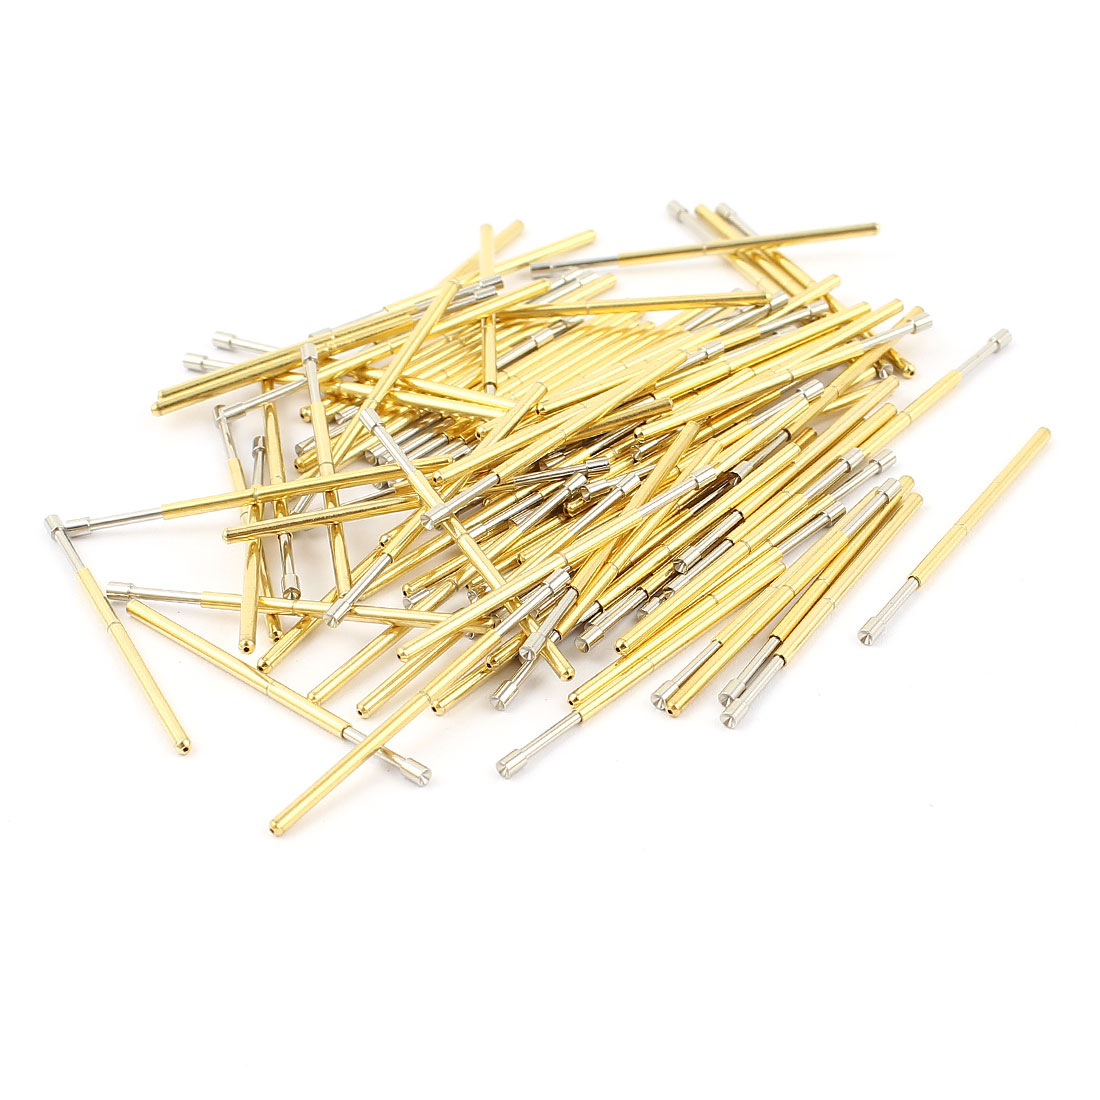 100 Pcs P100-A2 1.5mm Concave Tip Spring Testing Probes Pin 33.3mm Length